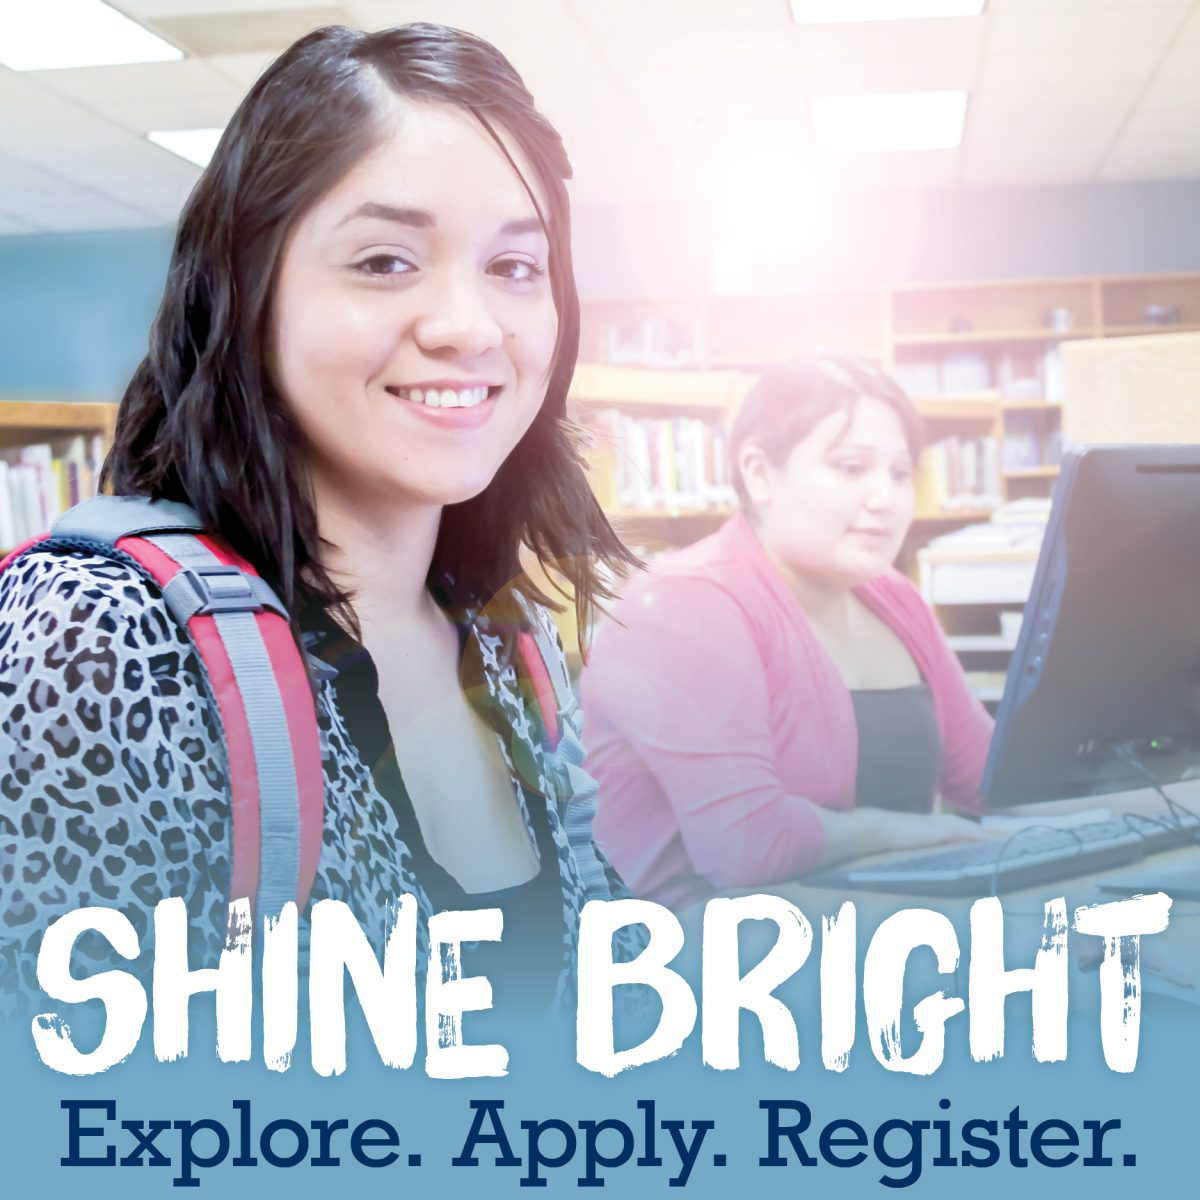 Whether you are a career starter or a career changer, M State will help you shine!